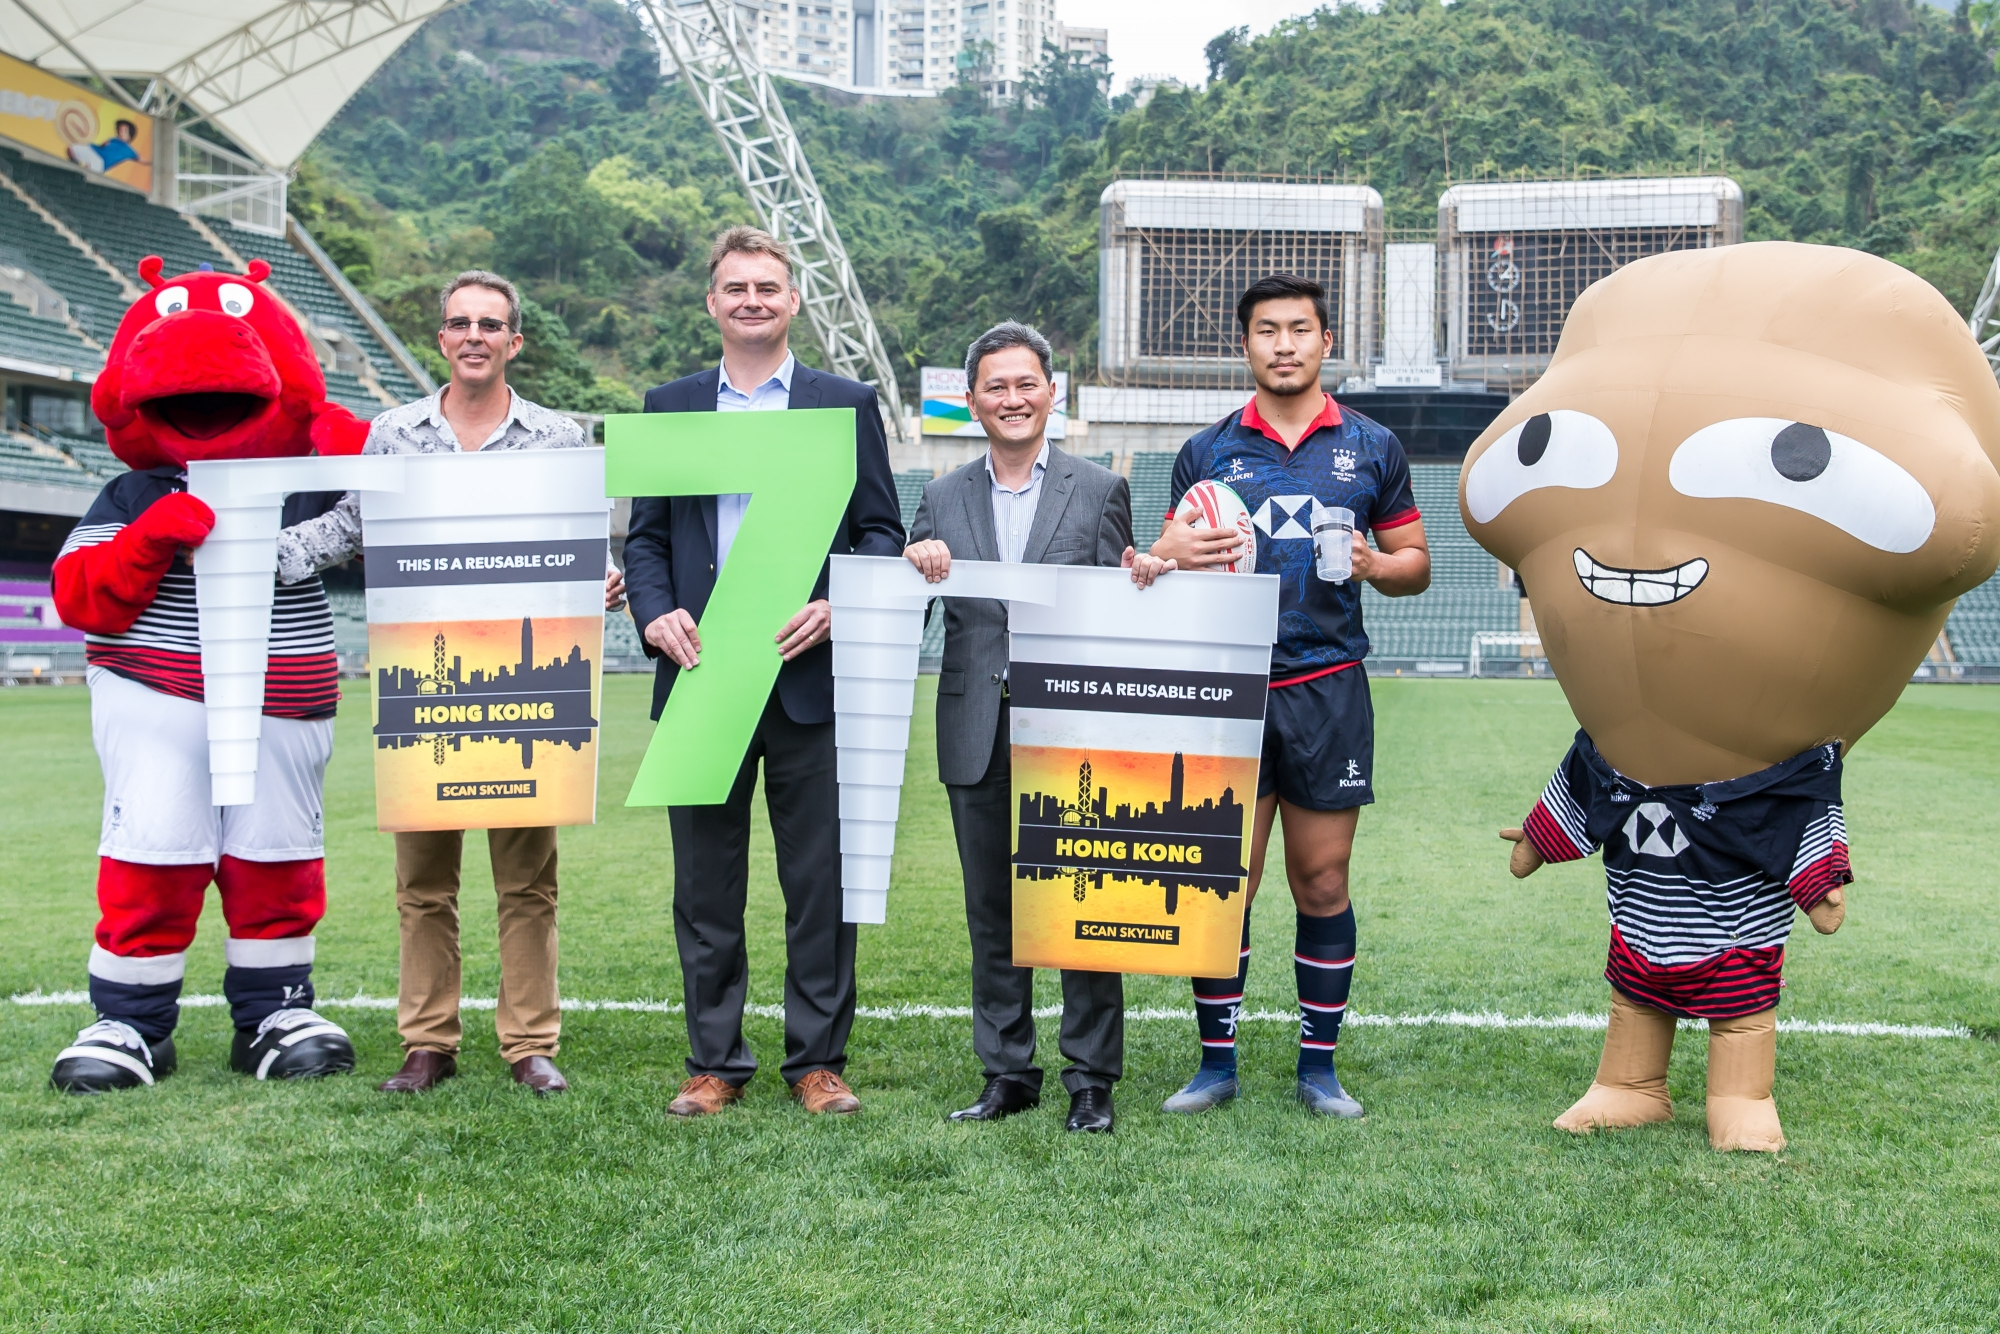 Drink from a cup of kindness at Cathay Pacific/HSBC Hong Kong Sevens